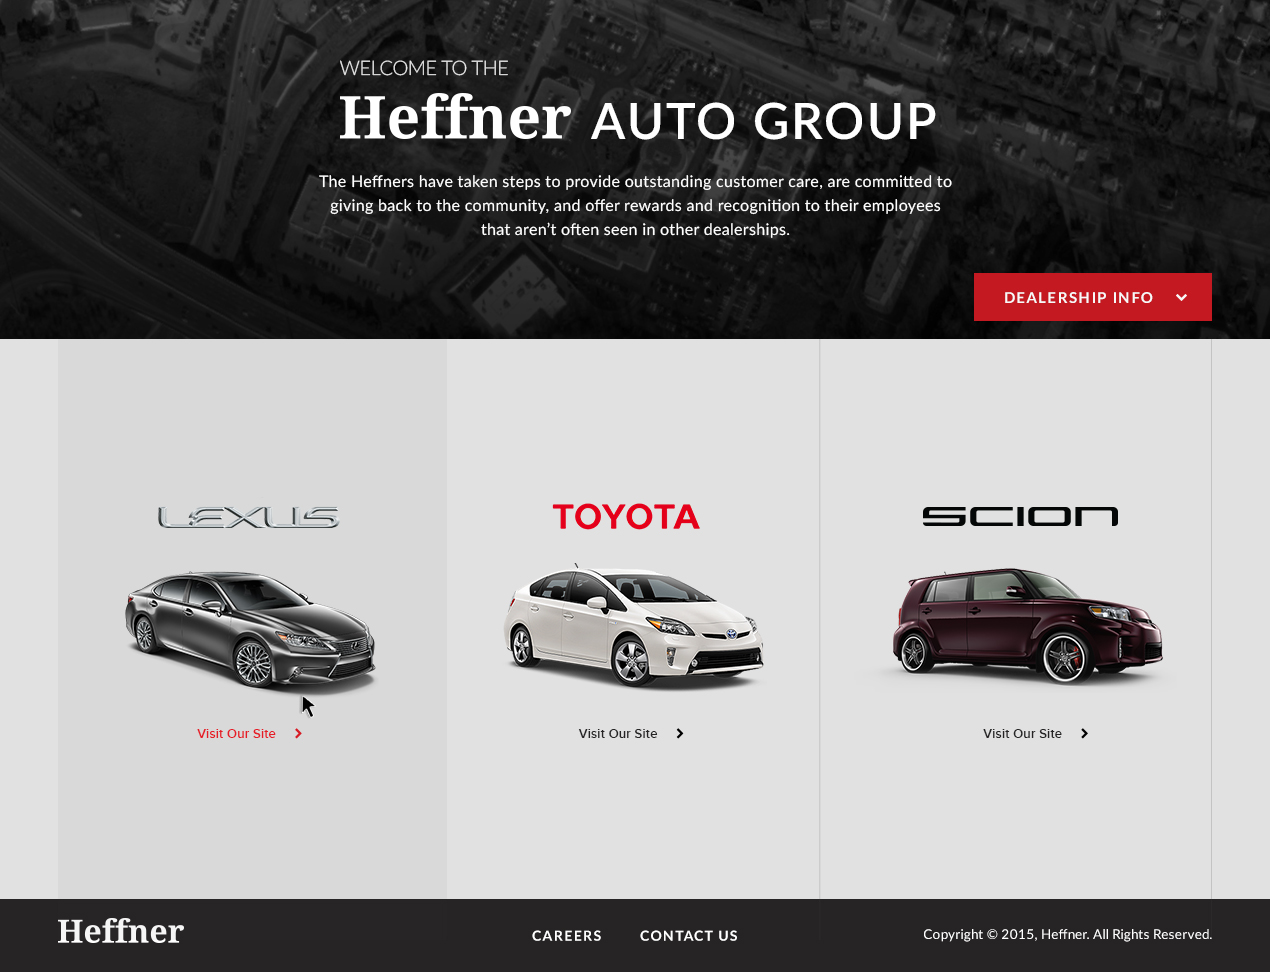 Heffner Auto Group